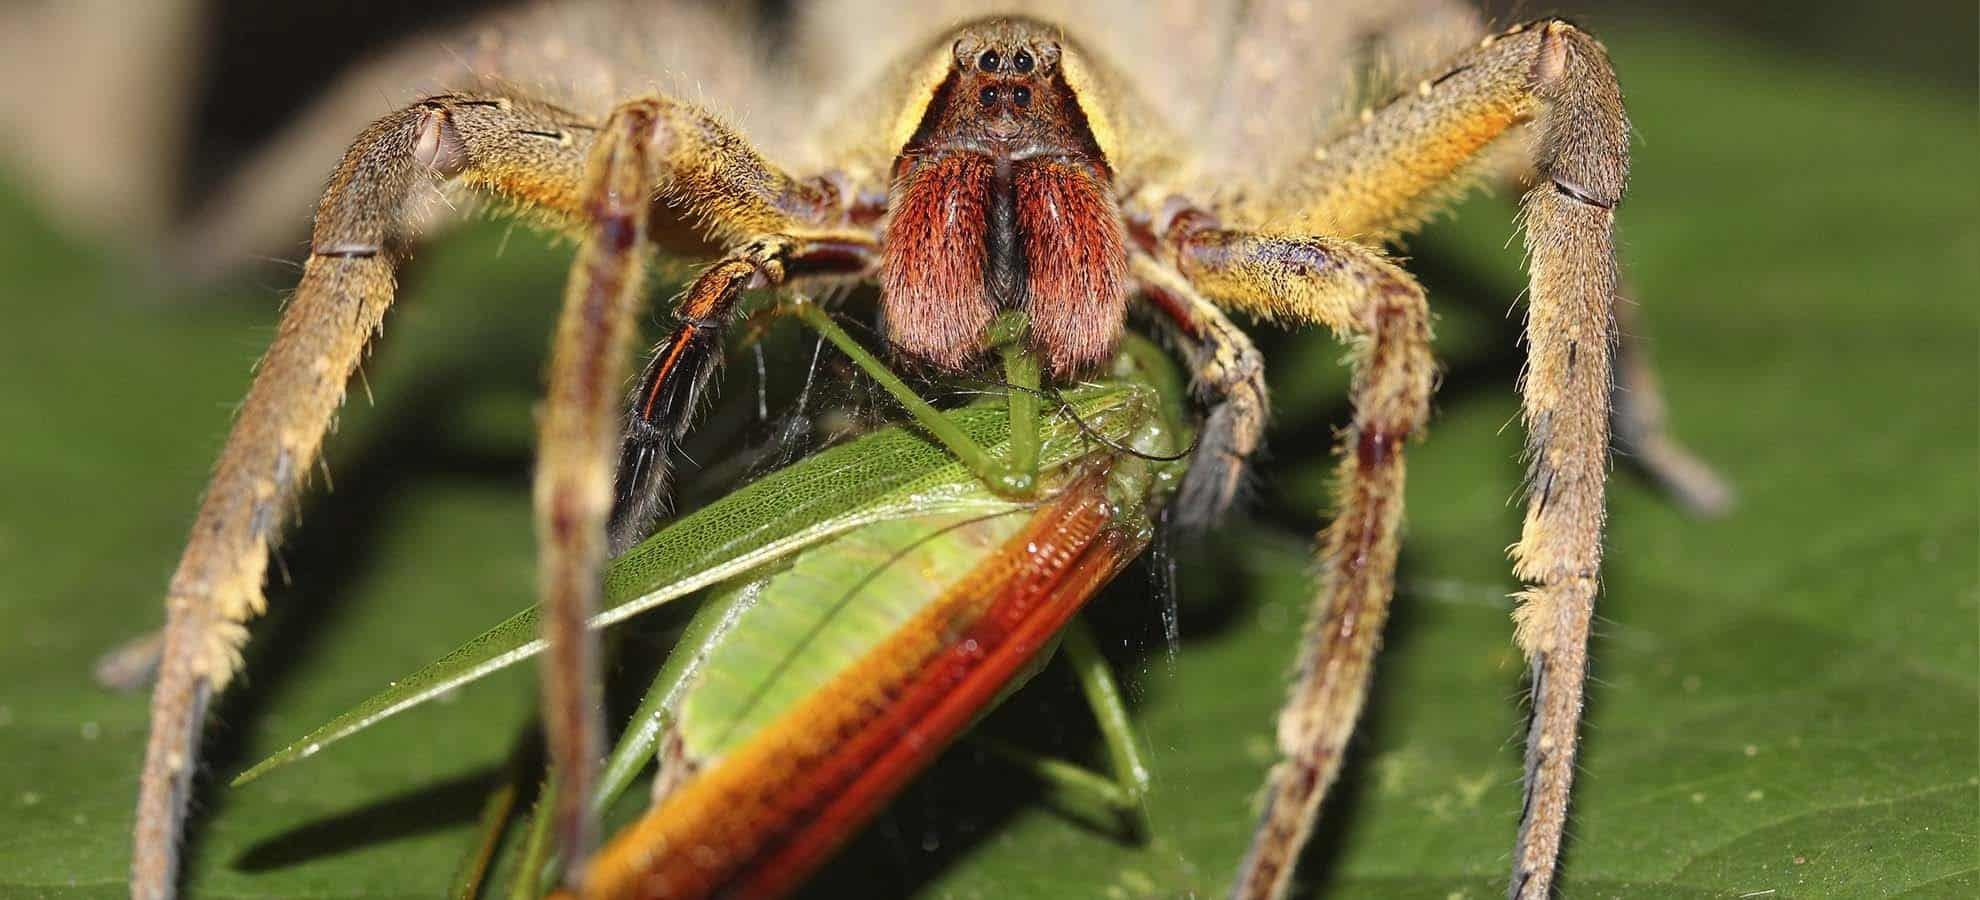 spider eating a grasshopper on leaf in the forest